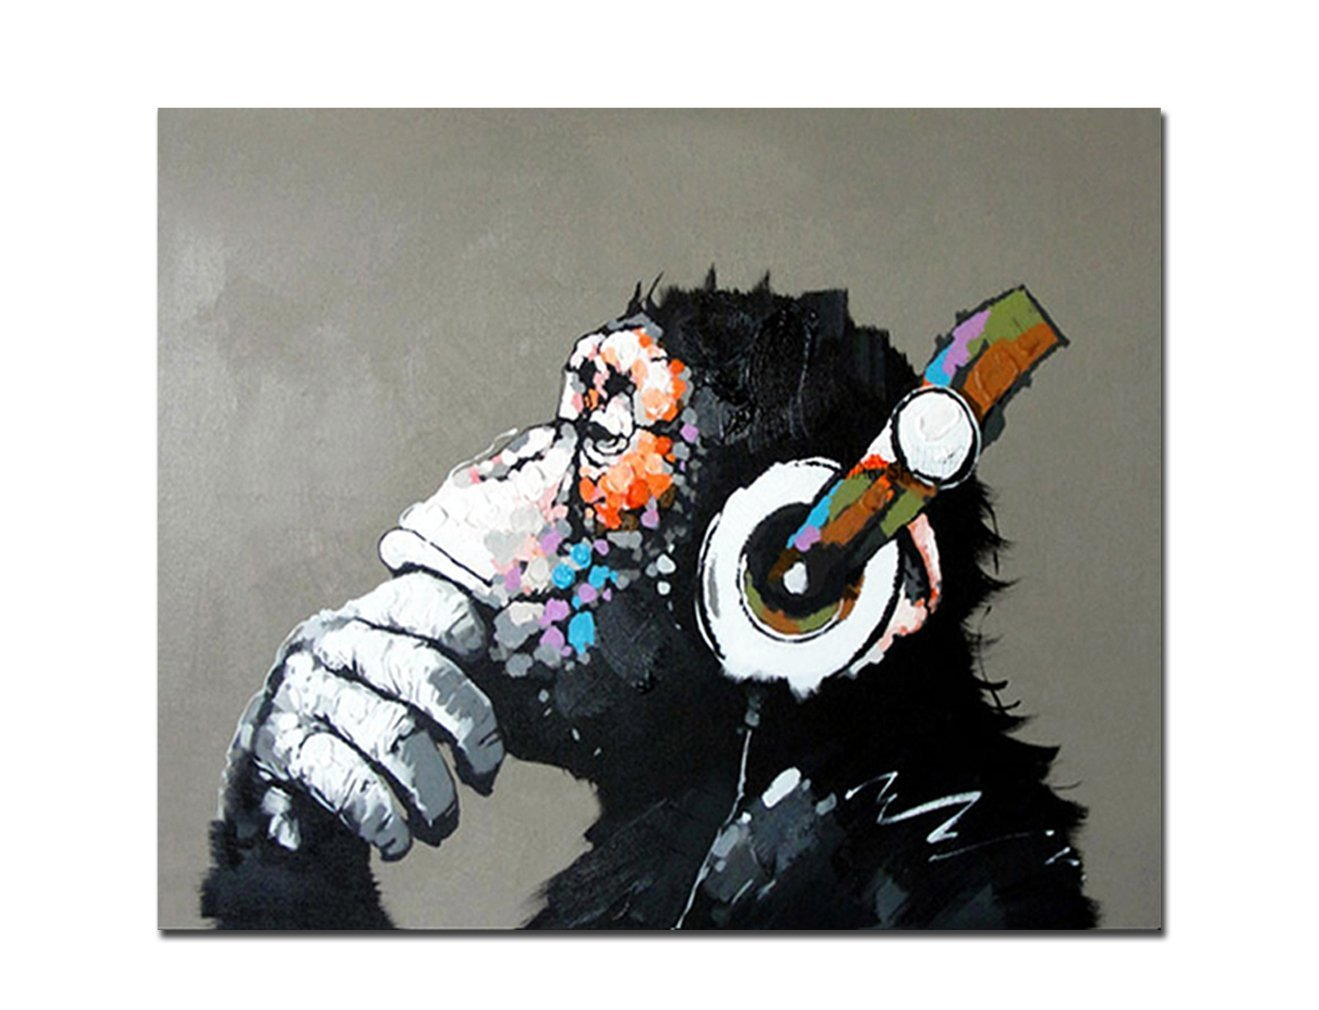 (60cm x 80cm) - Fokenzary Hand Painted Oil Painting on Canvas Pop Art Cool Ape Listening Music with Headphone Framed Ready to Hang B01MQNYRQ5 11890 60x80cm  60x80cm